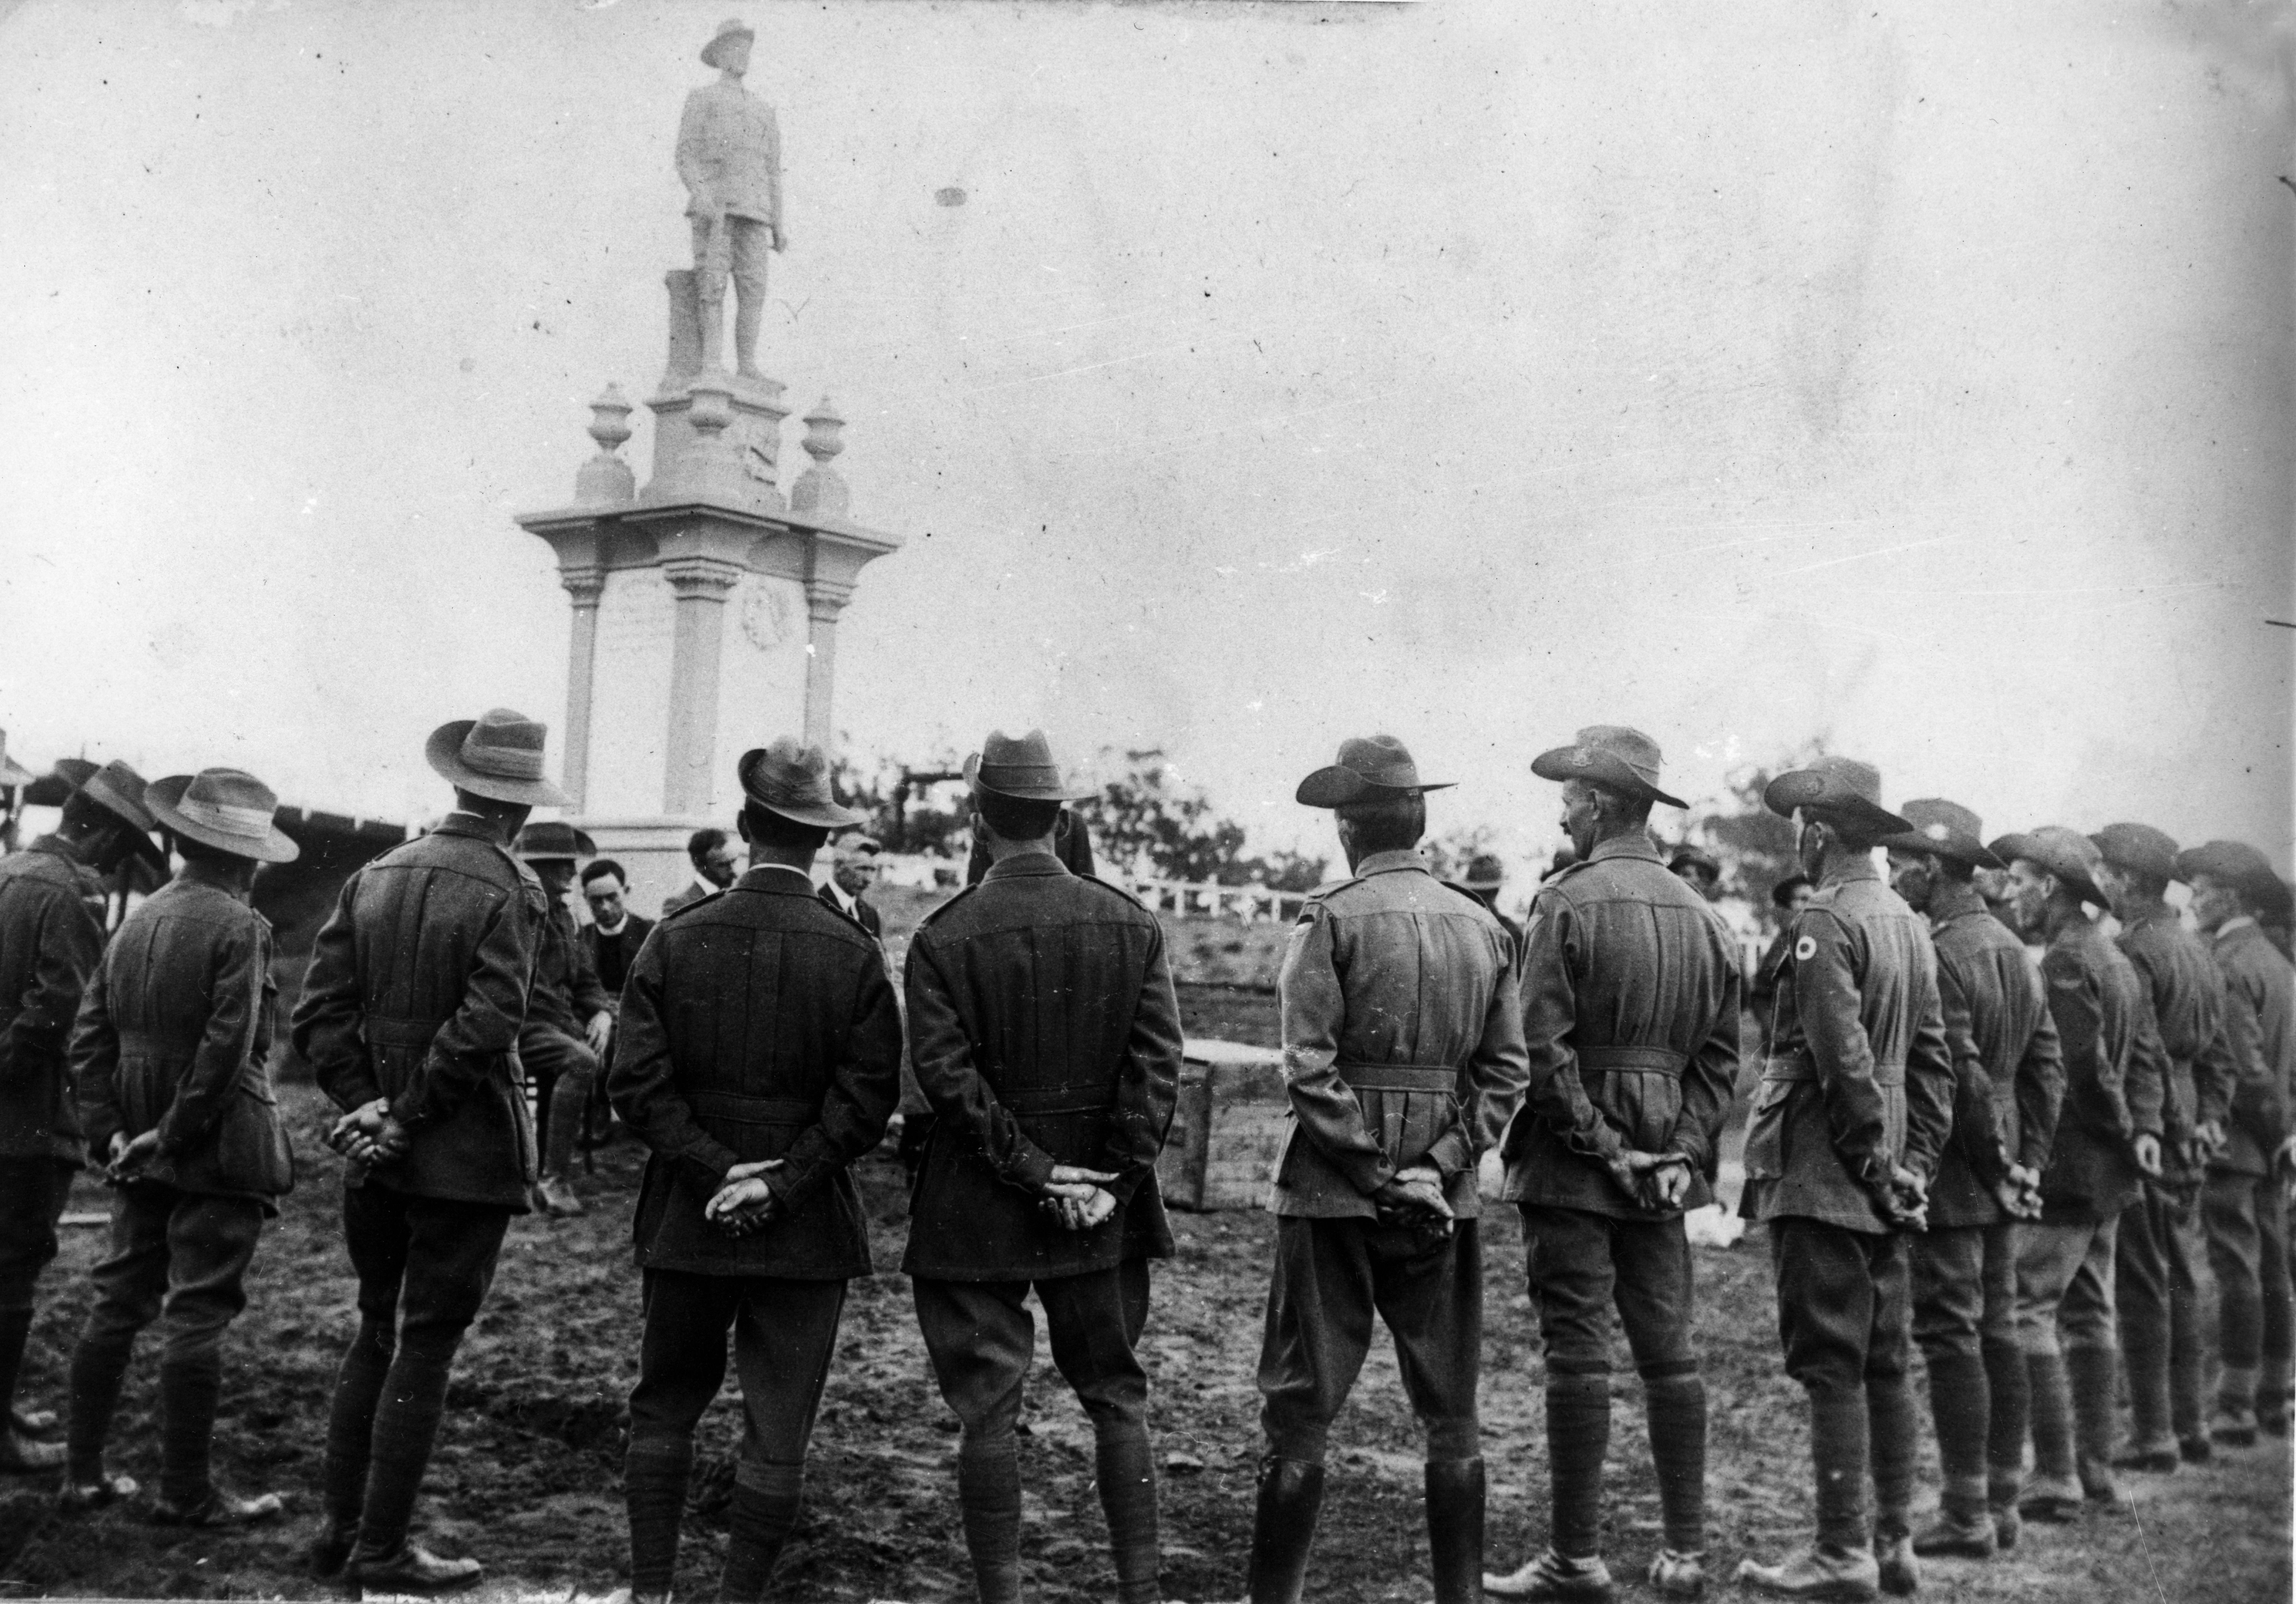 Returned soldiers in uniform surrounding the Digger War Memorial